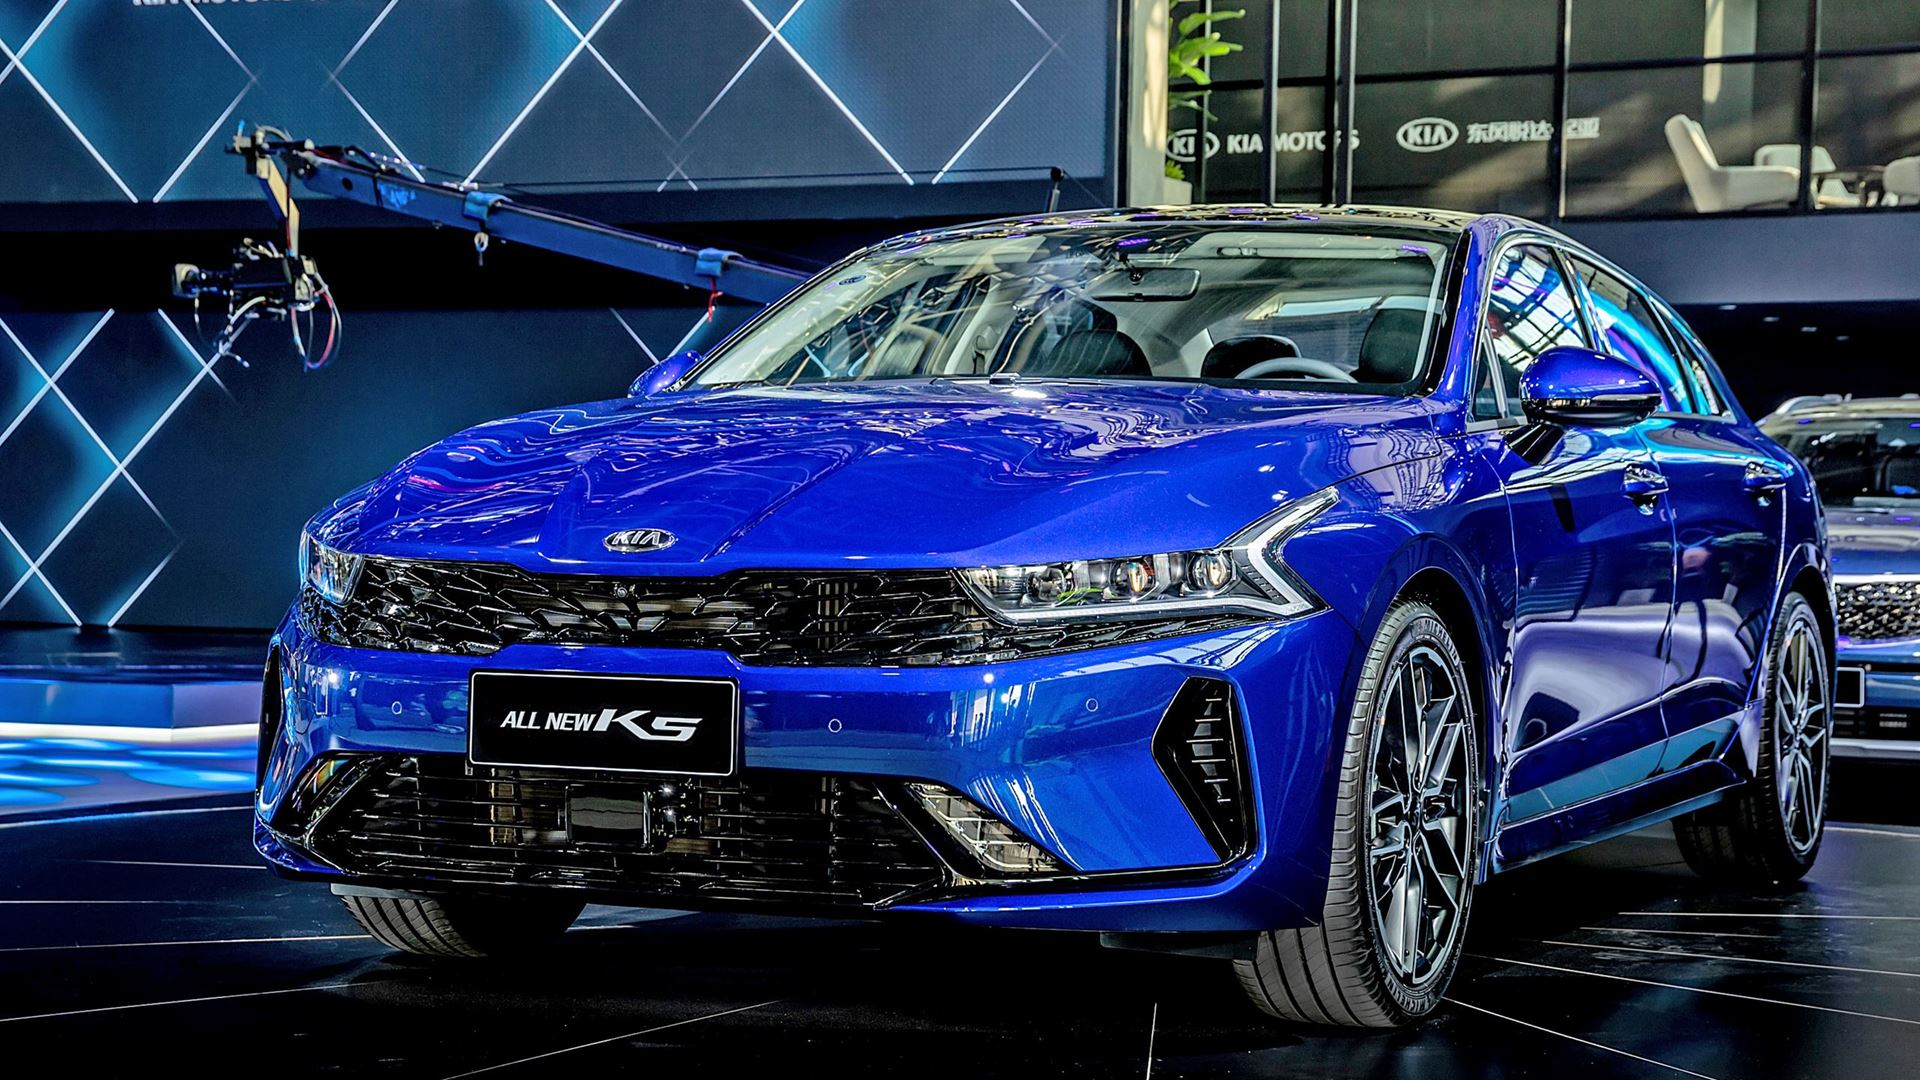 Kia Motors reveals new K5 and Carnival at Auto China 2020 - Image 3